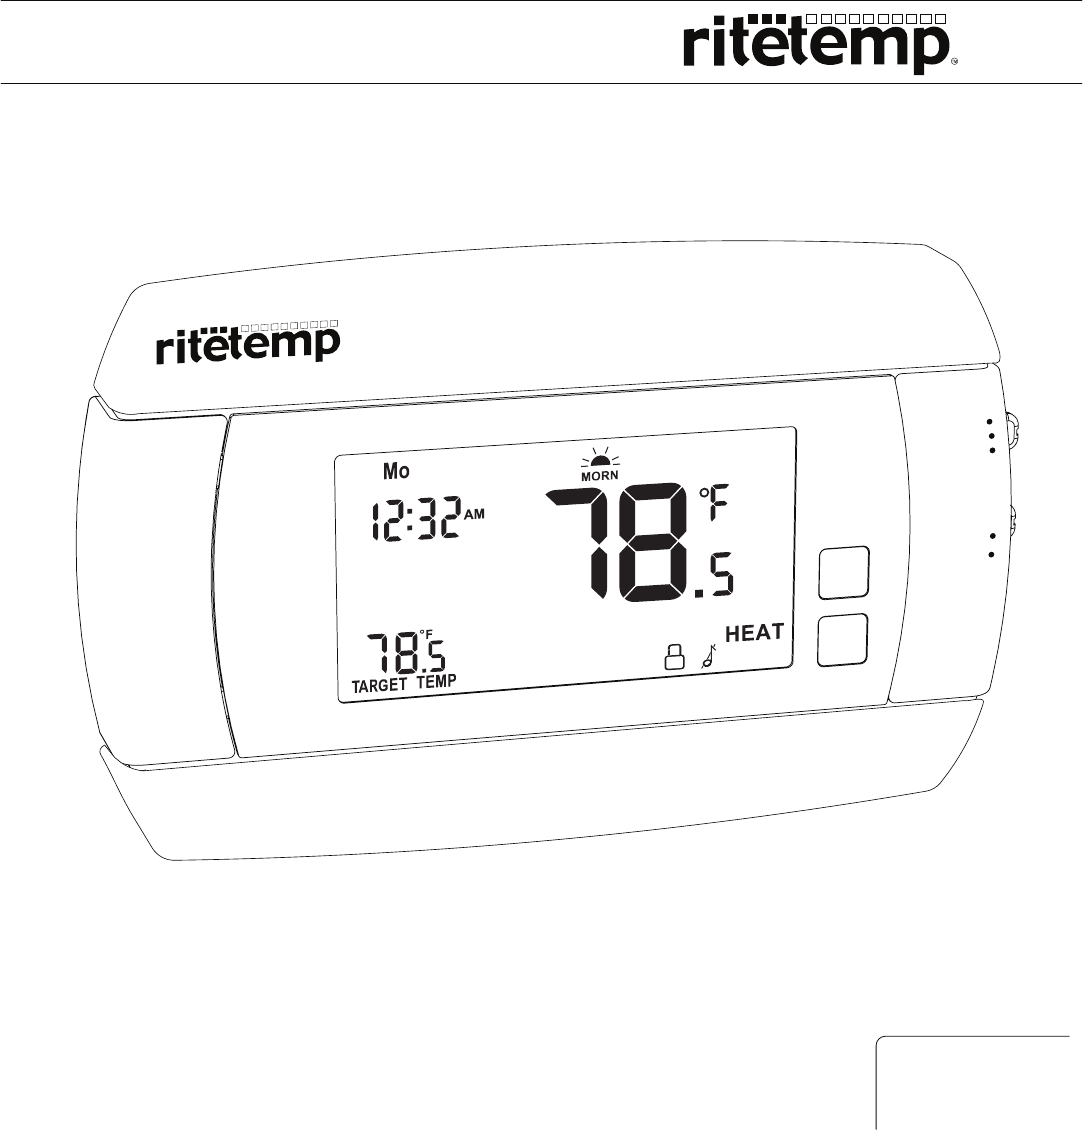 ritetemp Thermostat 6030 manual